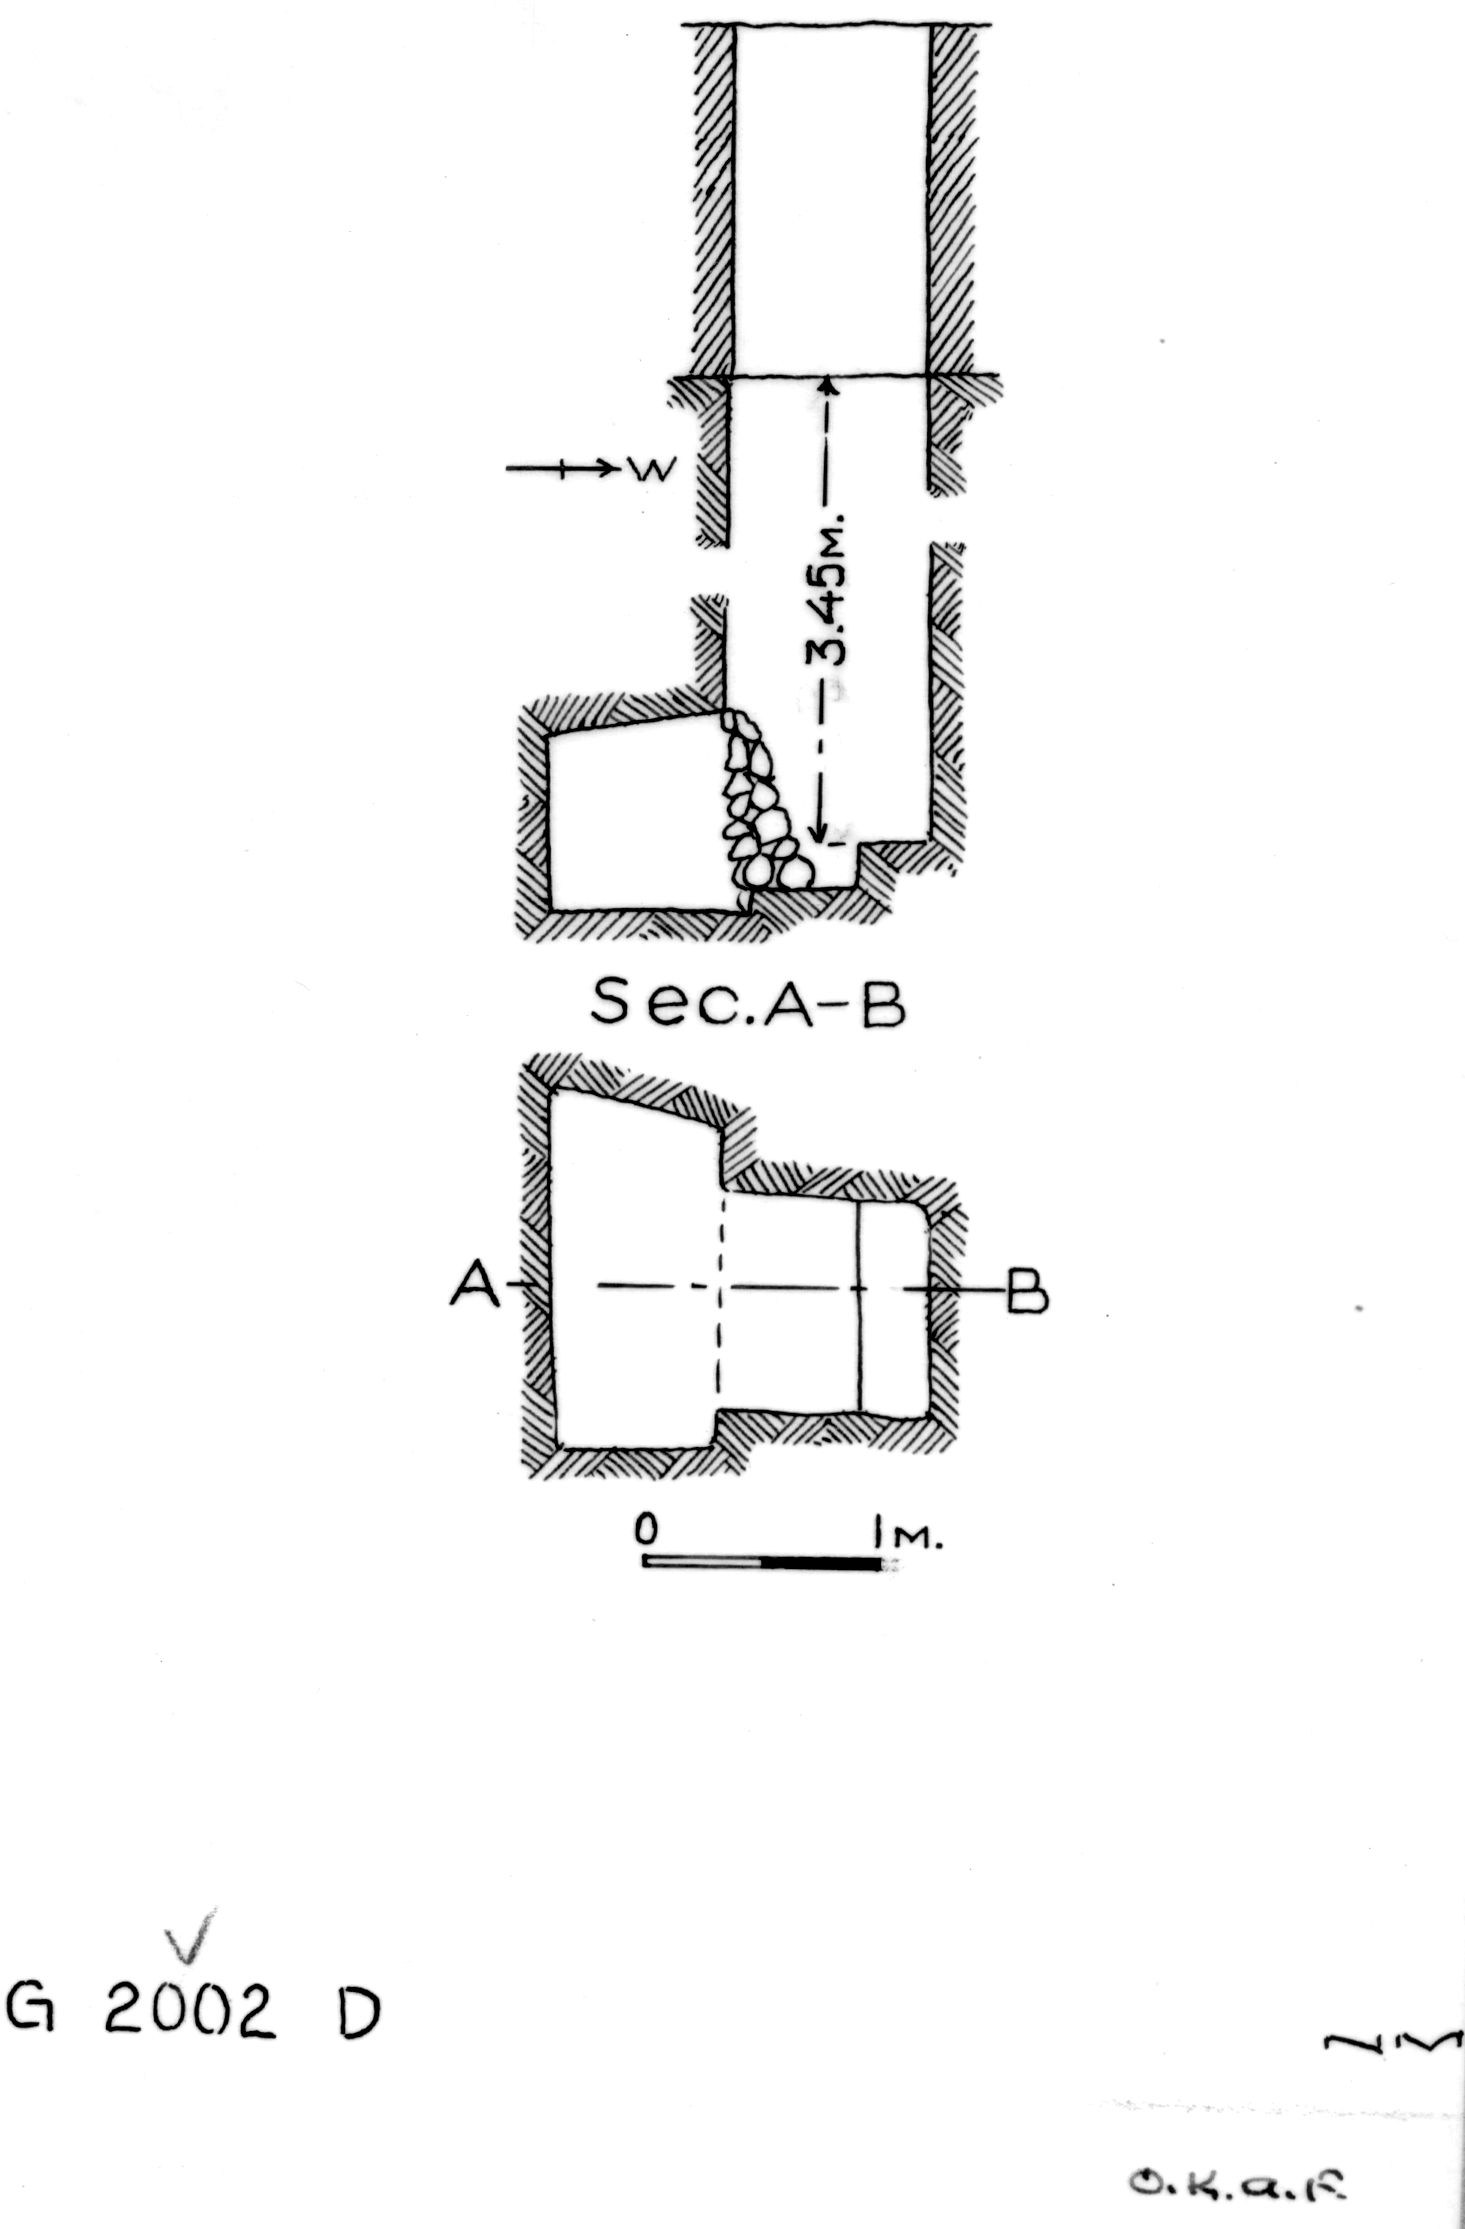 Maps and plans: G 2002, Shaft D